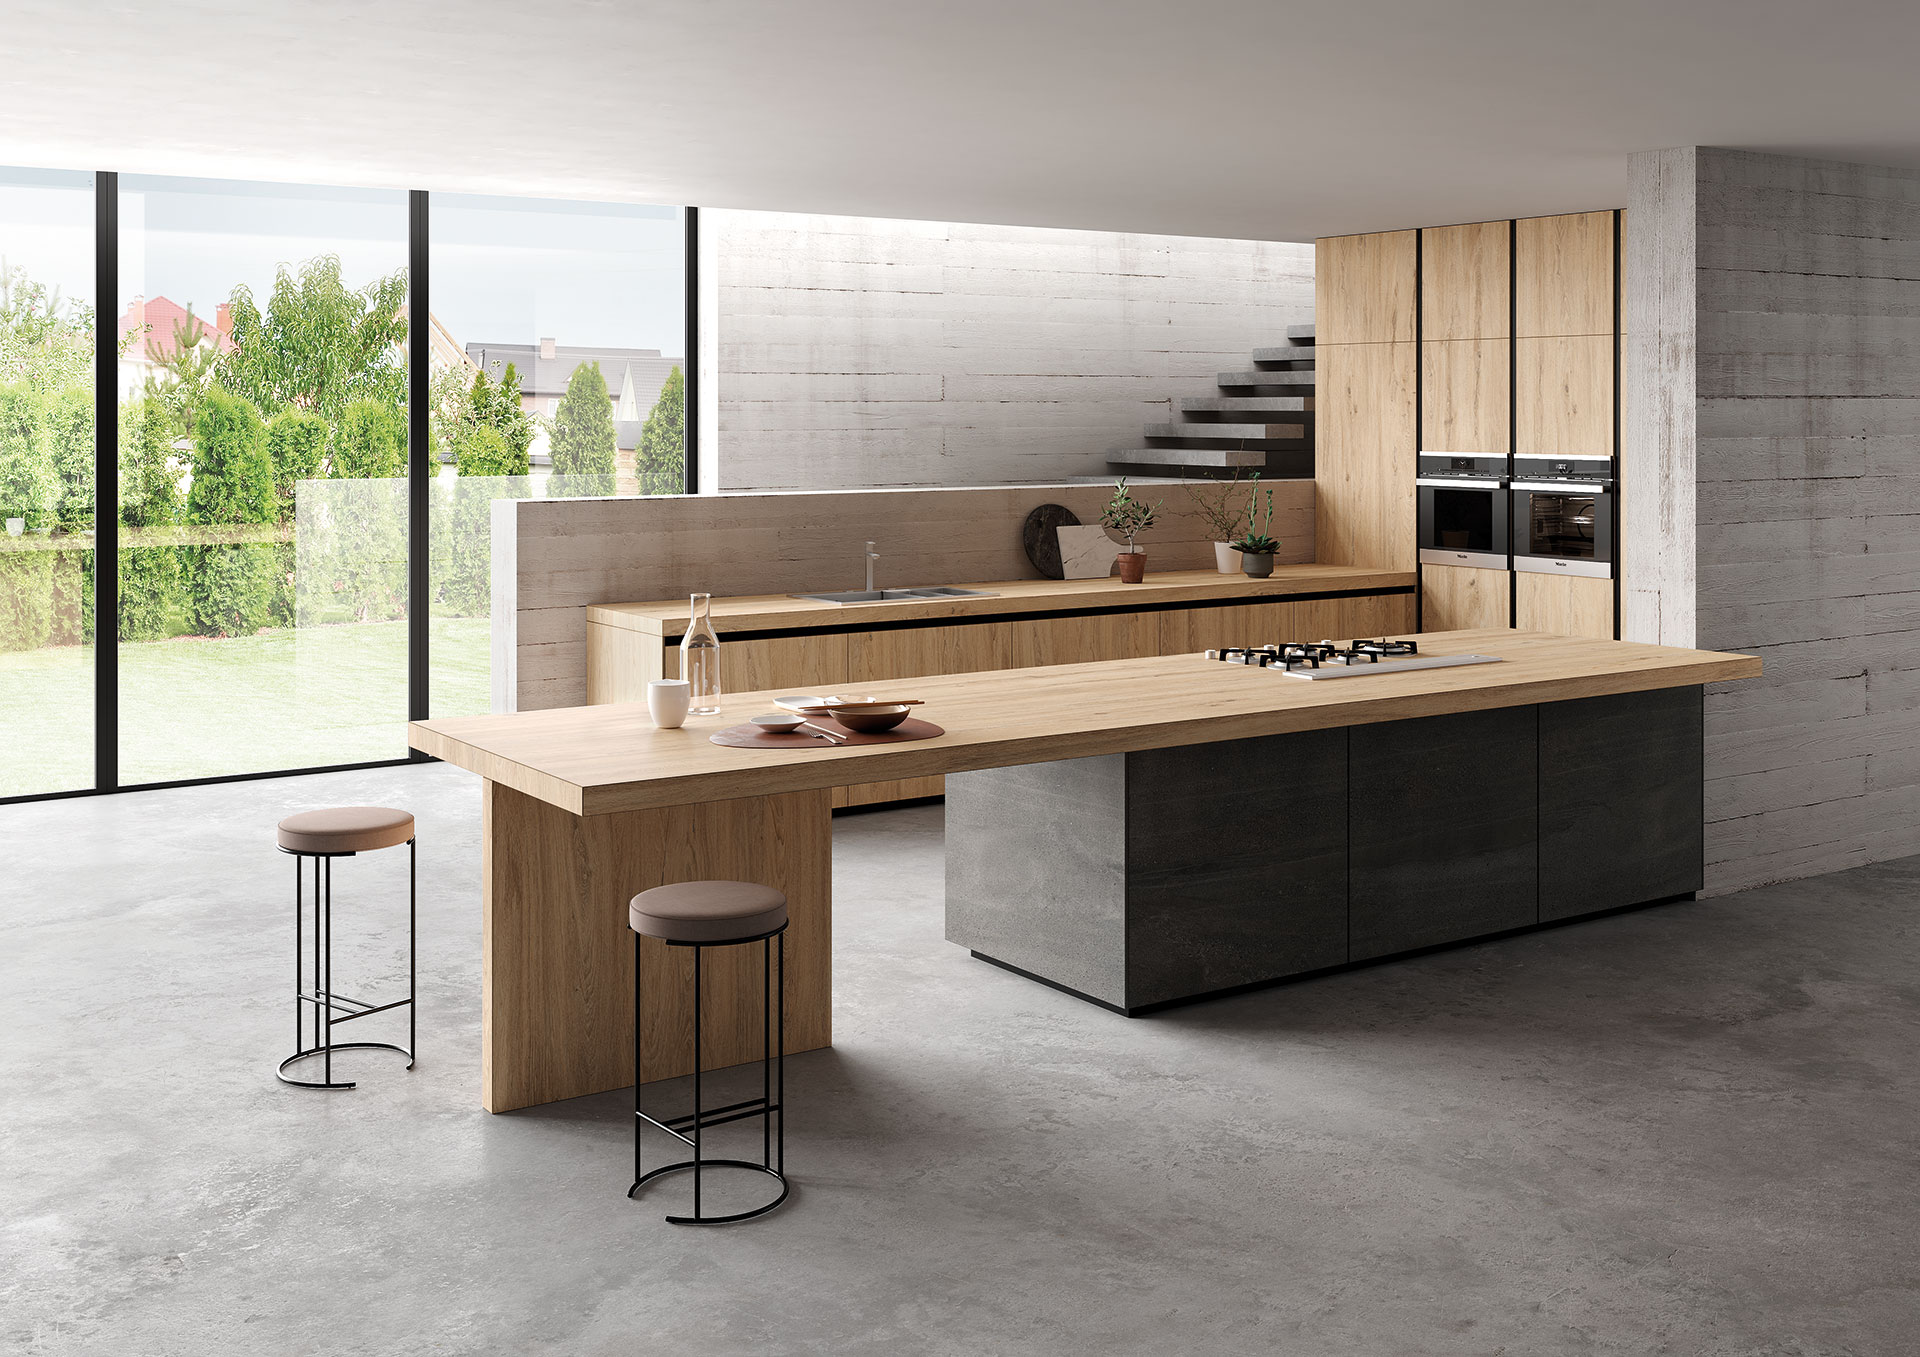 Piano Cucina Gres Opinioni hygienic practical safe surfaces: sapienstone kitchen